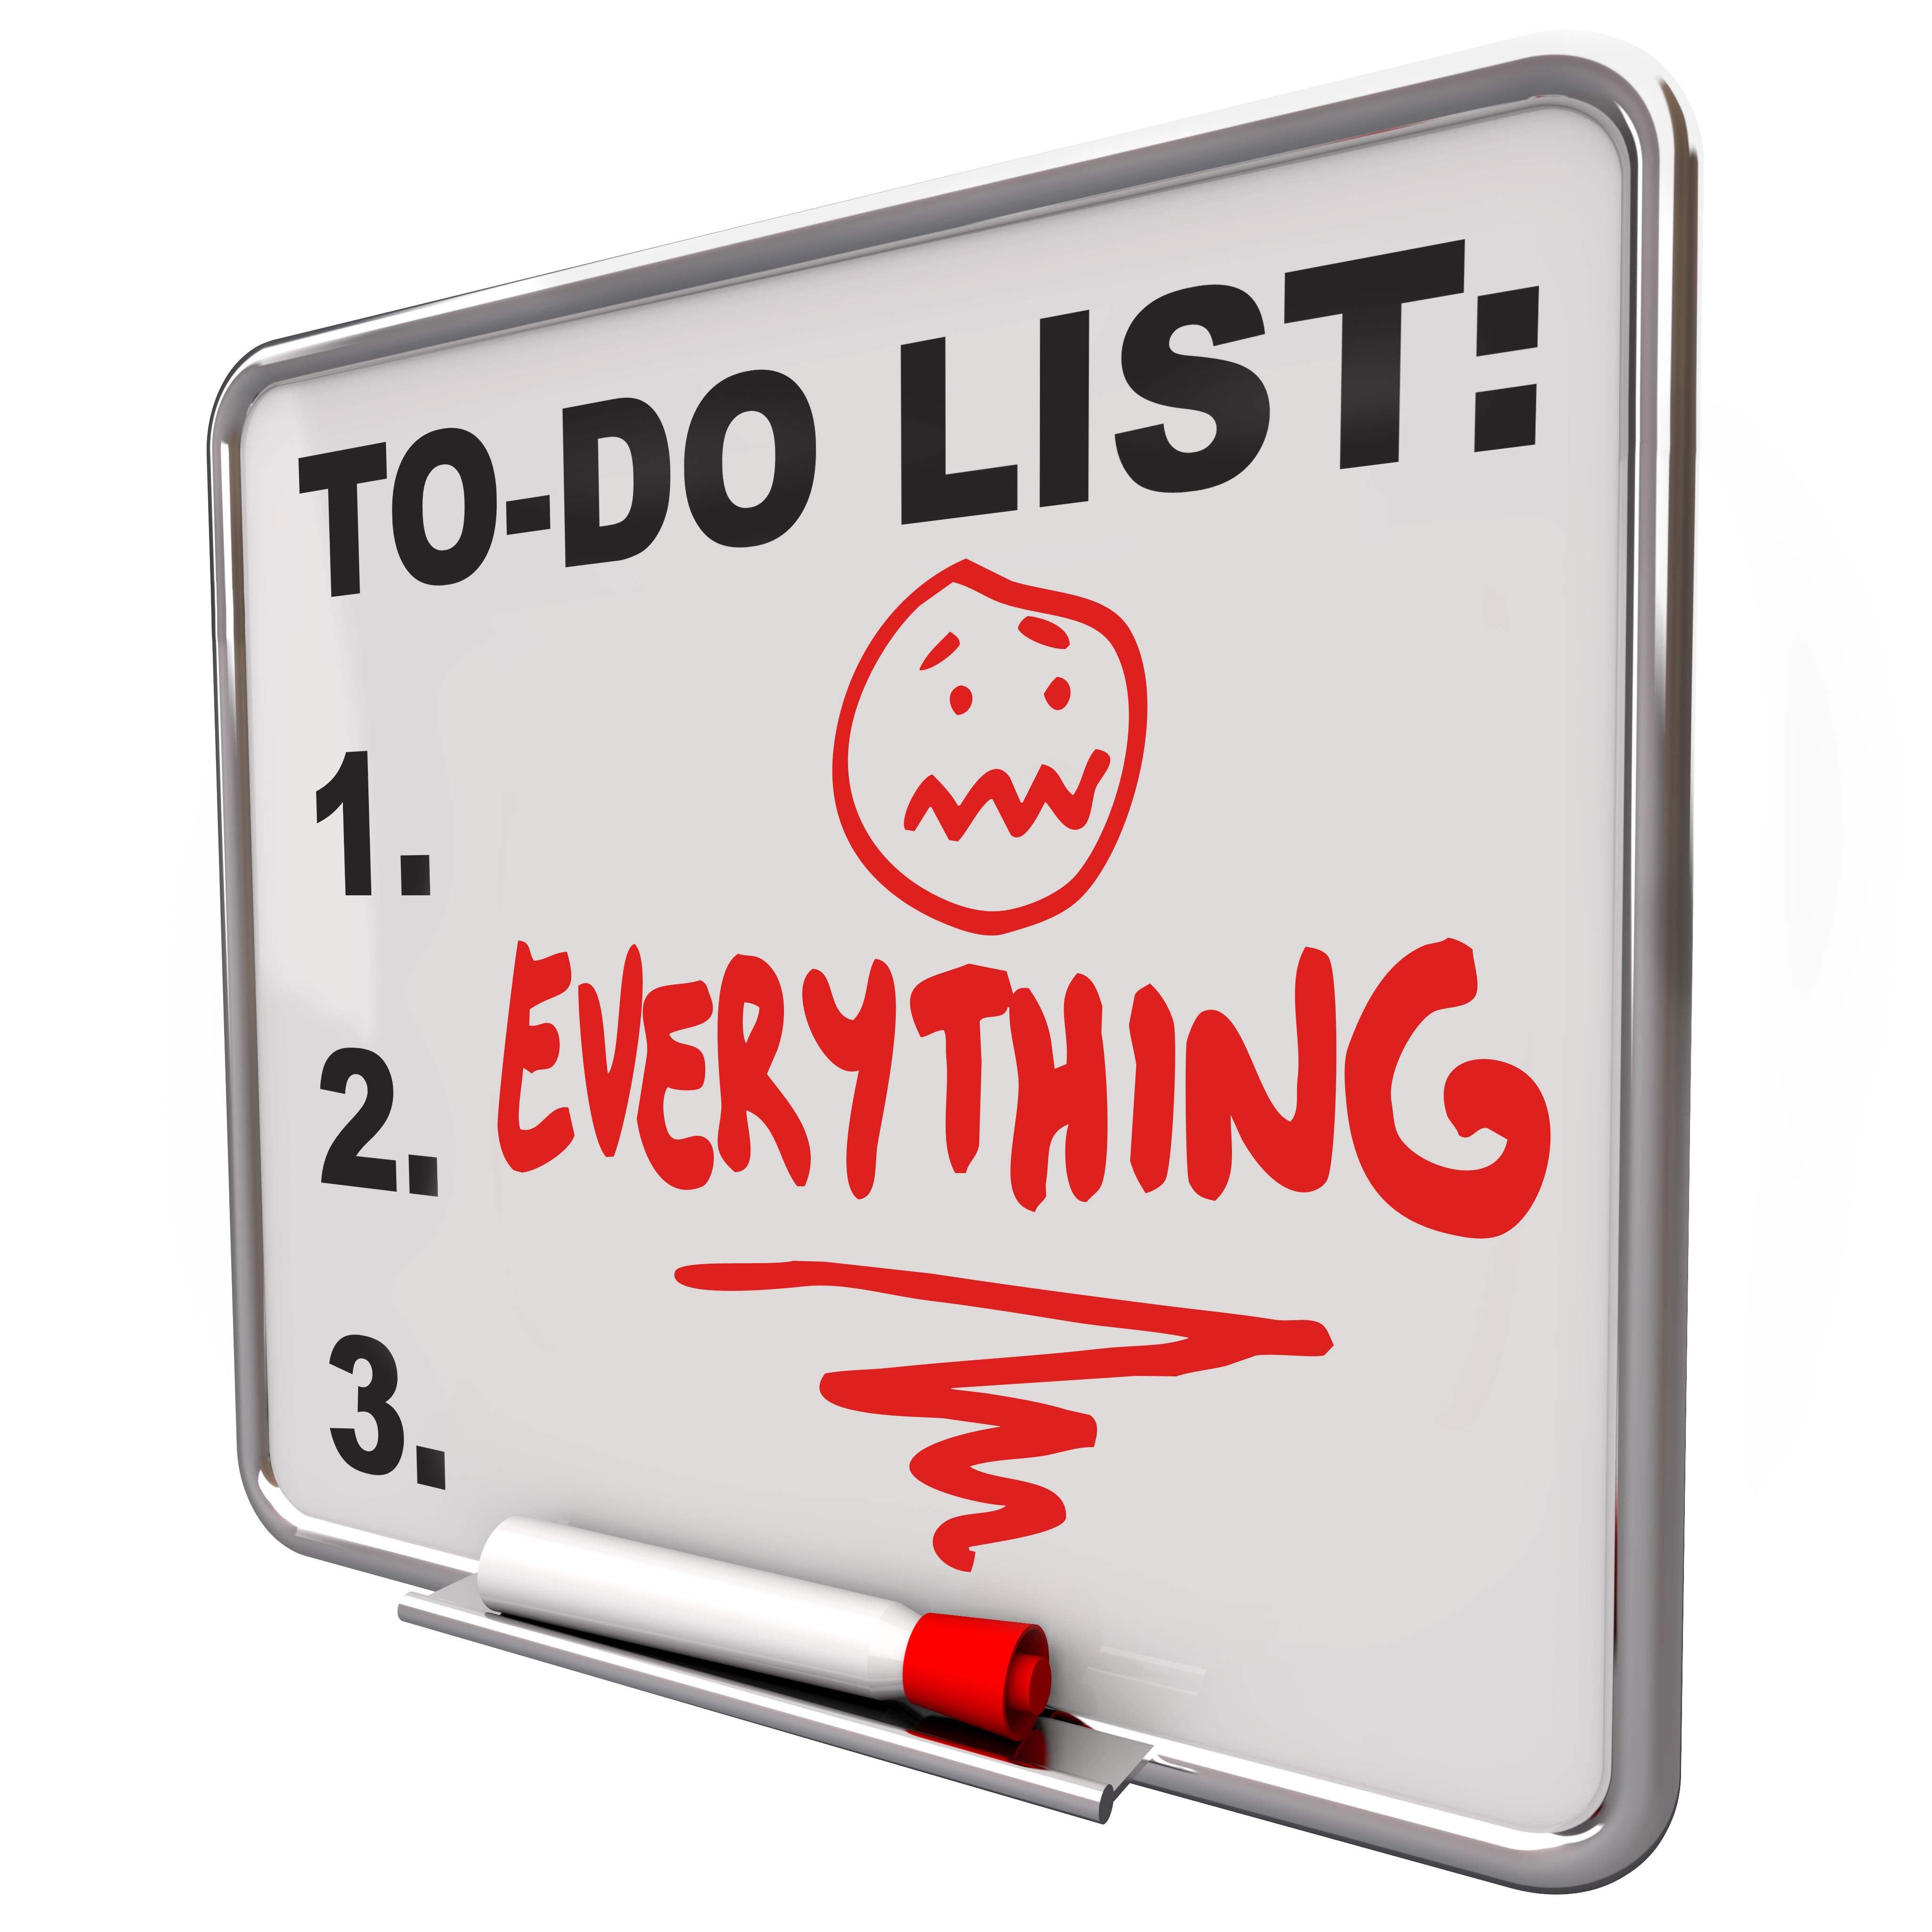 To do - everything Shutterstock